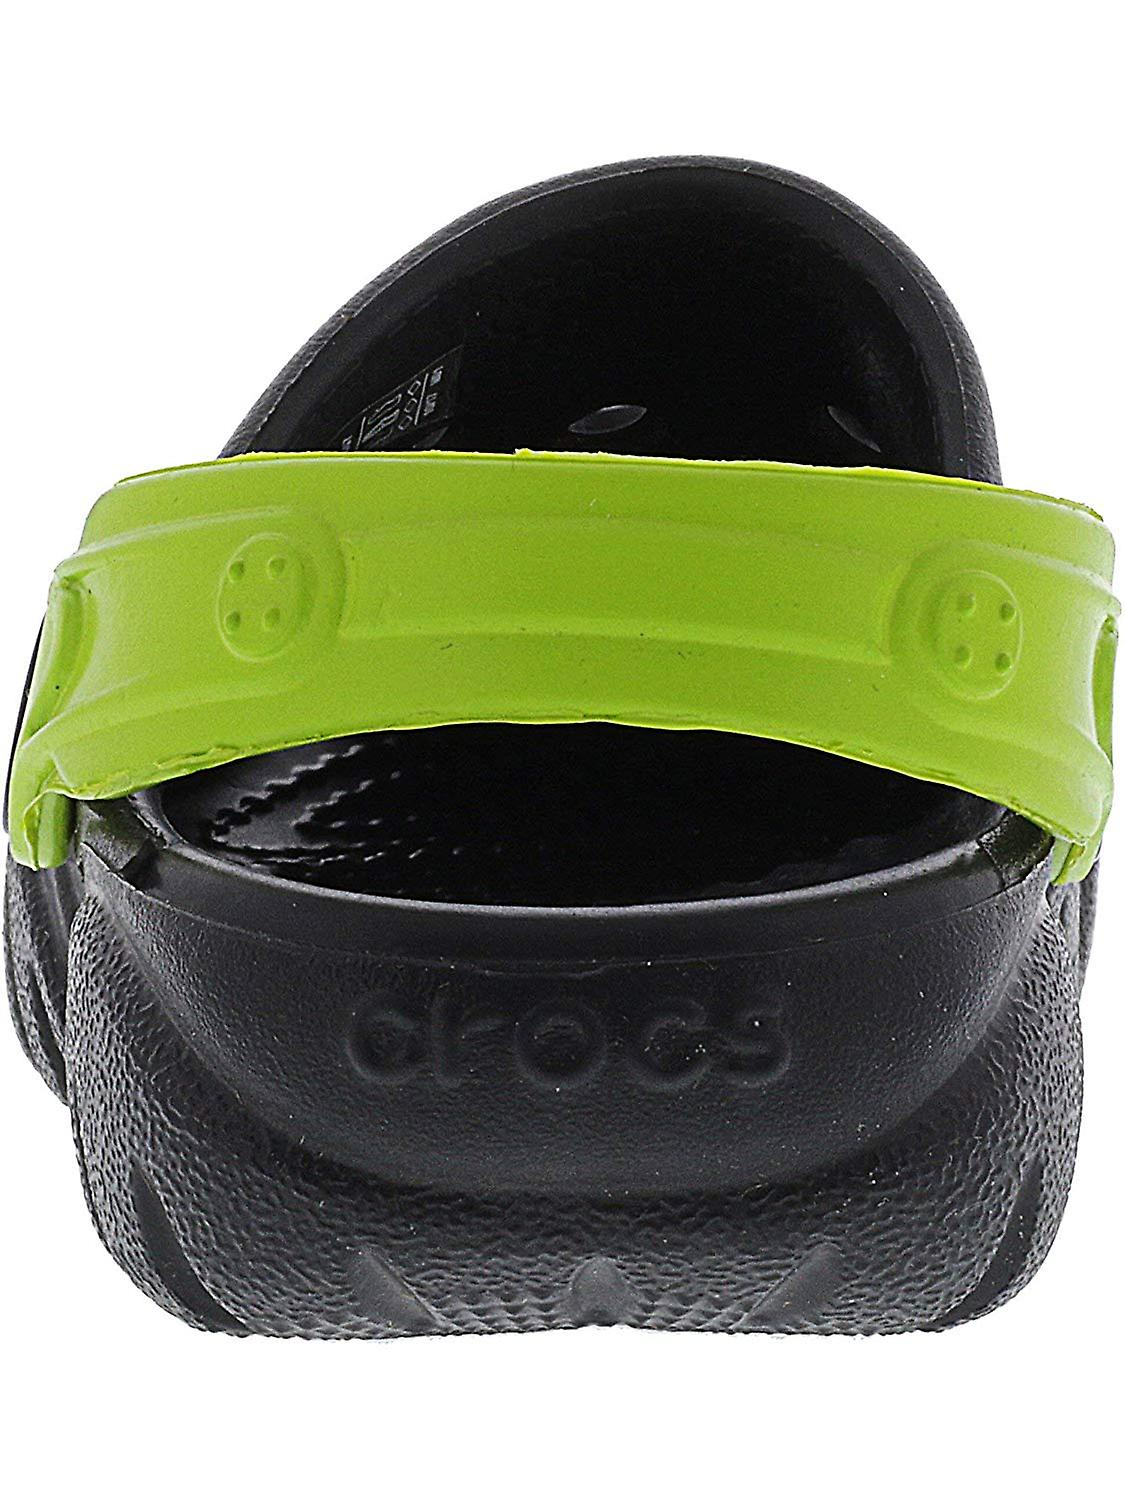 1ce8ba9f4b8a2 Crocs Kids Swiftwater Clog Ltd Clogs